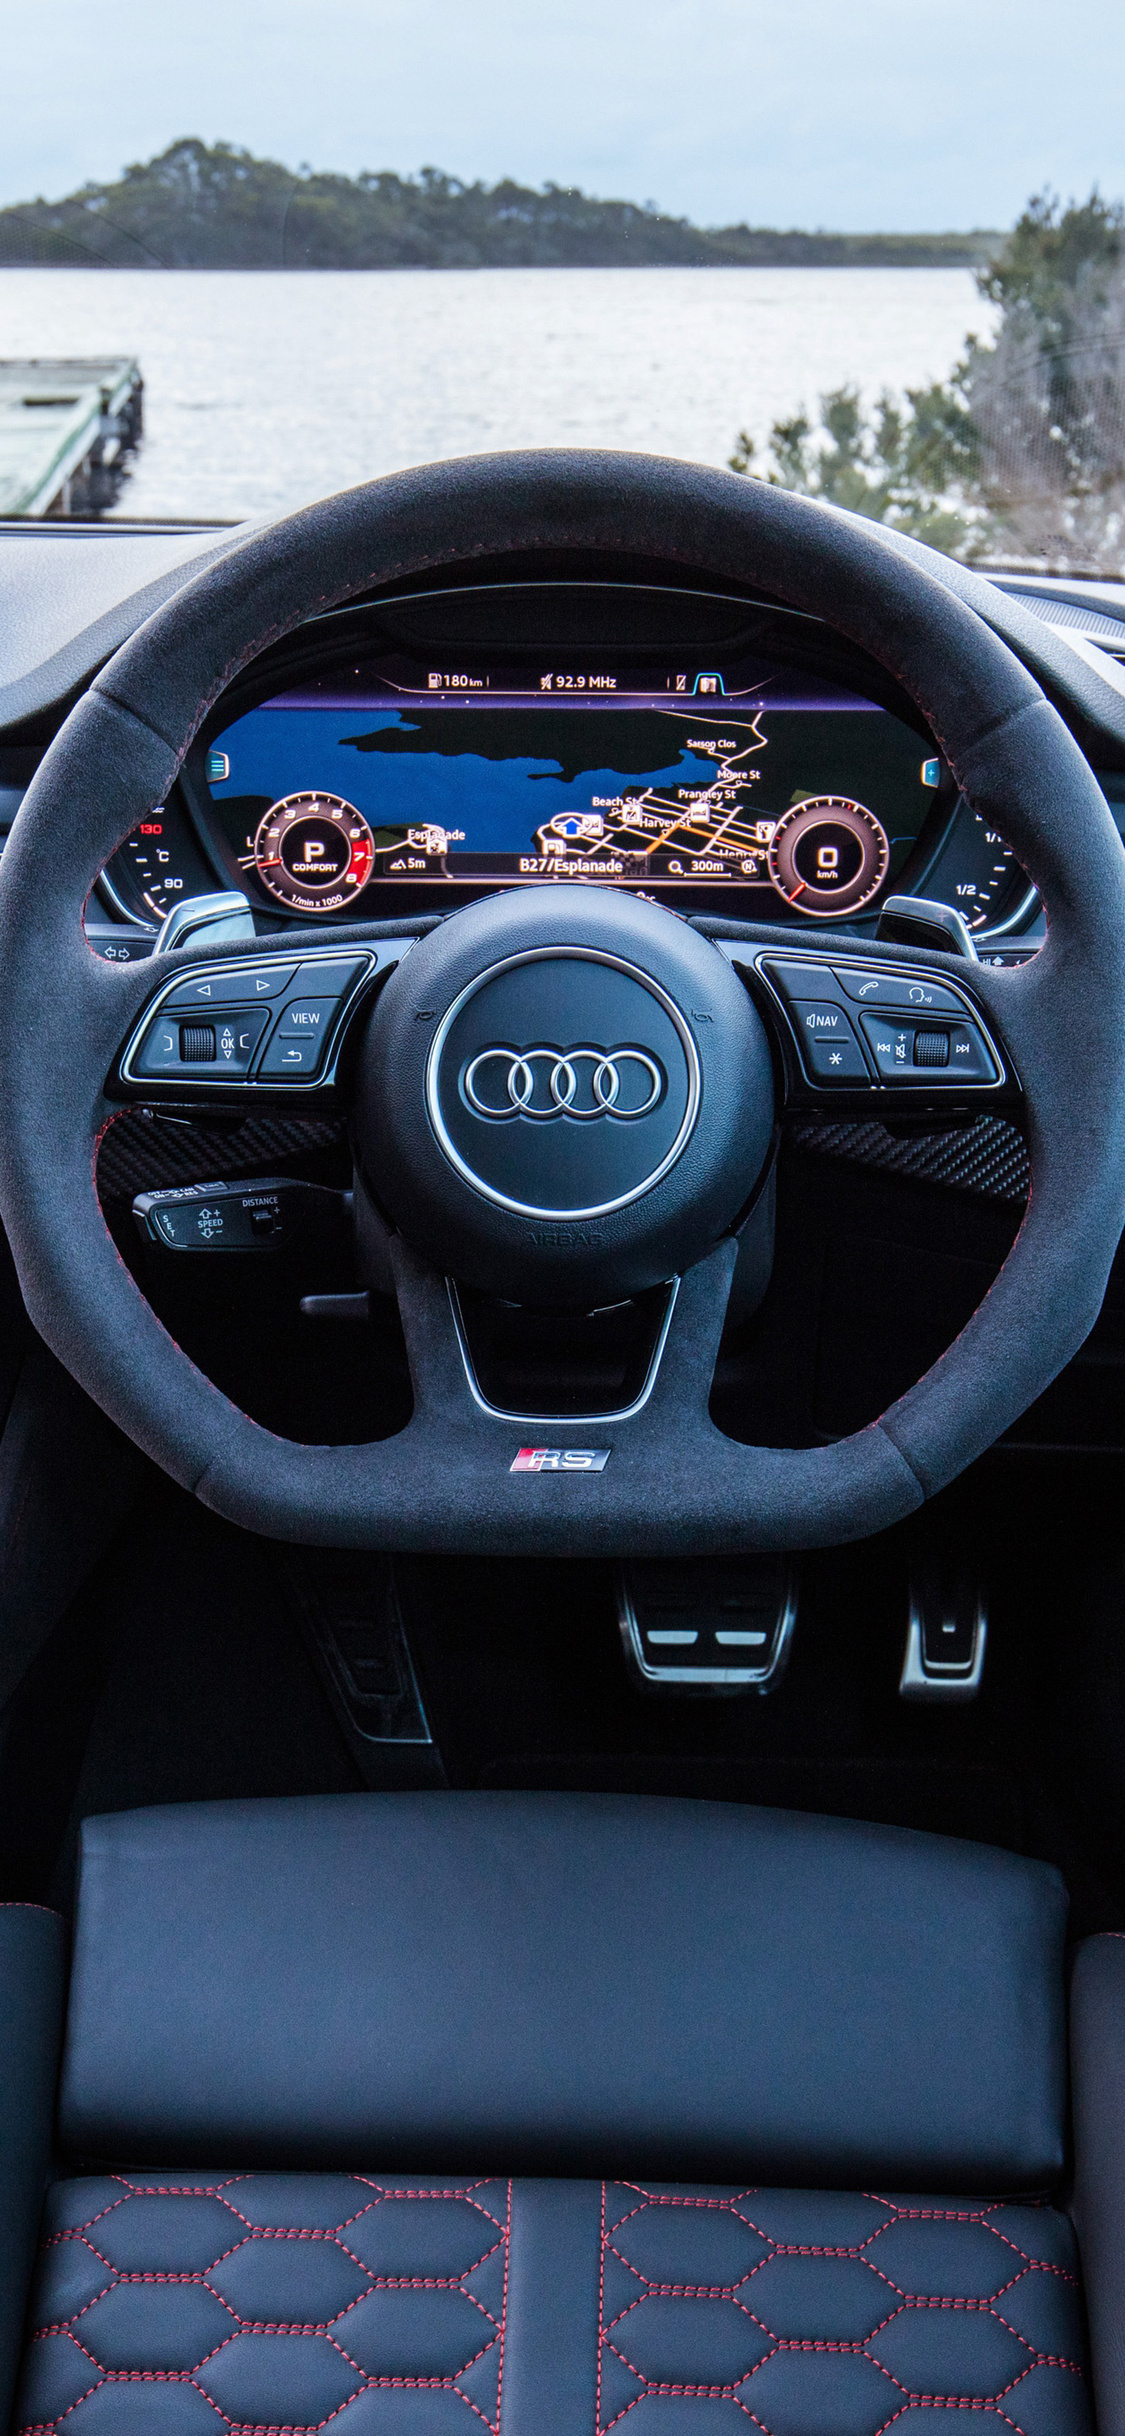 1125x2436 Audi Rs5 Coupe Interior 4k Iphone Xs Iphone 10 Iphone X Hd